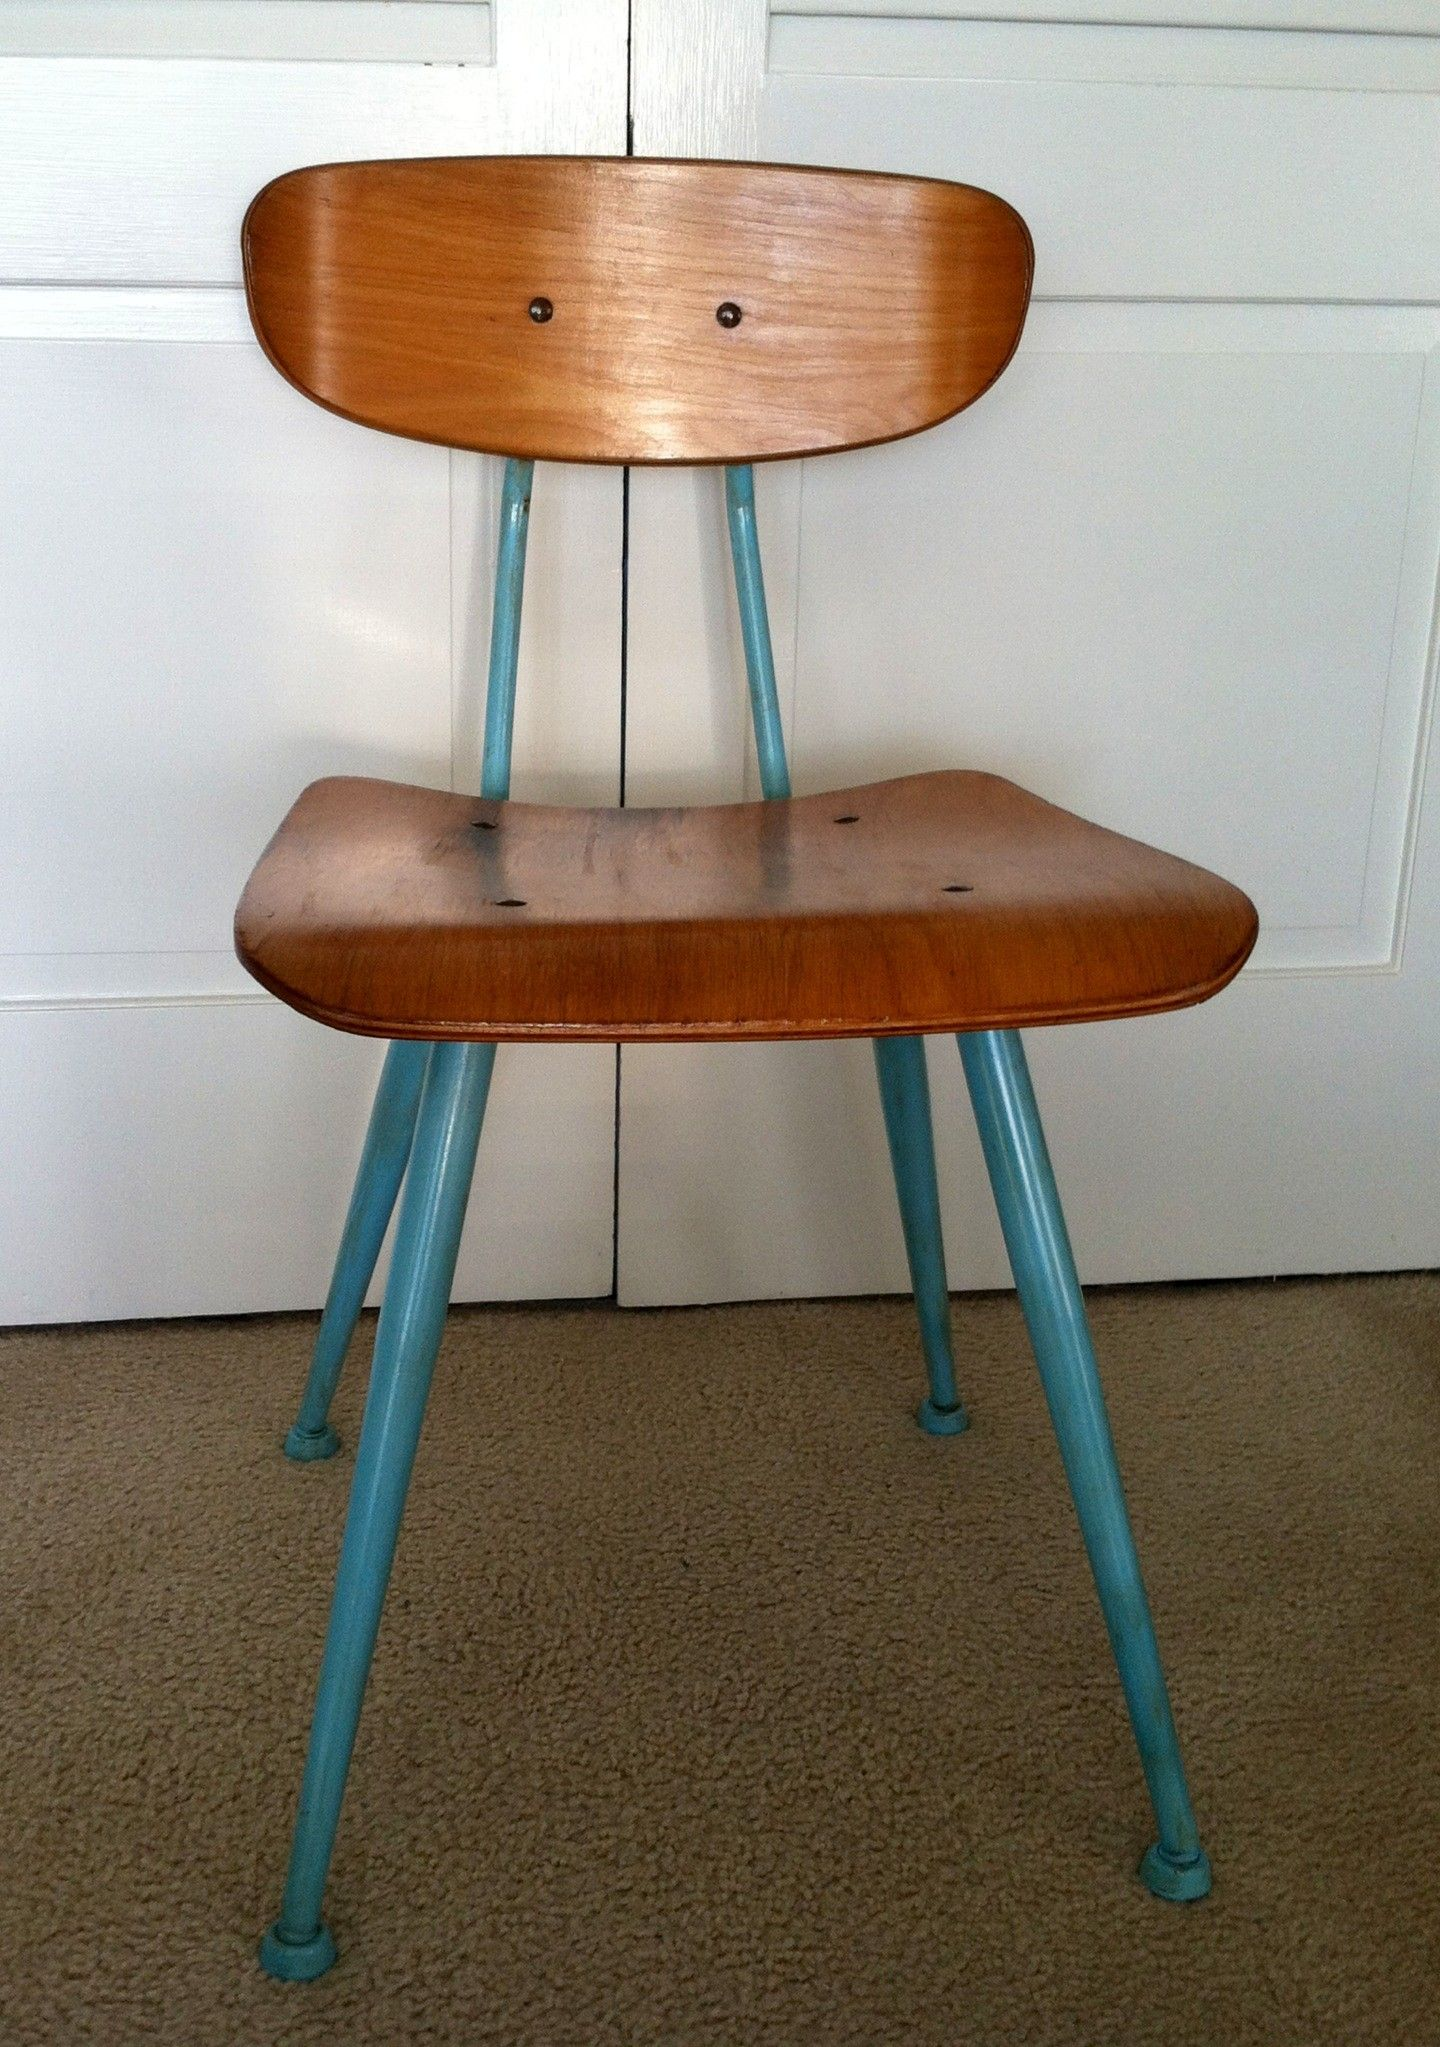 Exceptionnel Vintage School Chair $65   Bowie  Http://furnishly.com/catalog/product/view/id/4334/s/vintage School Chair/